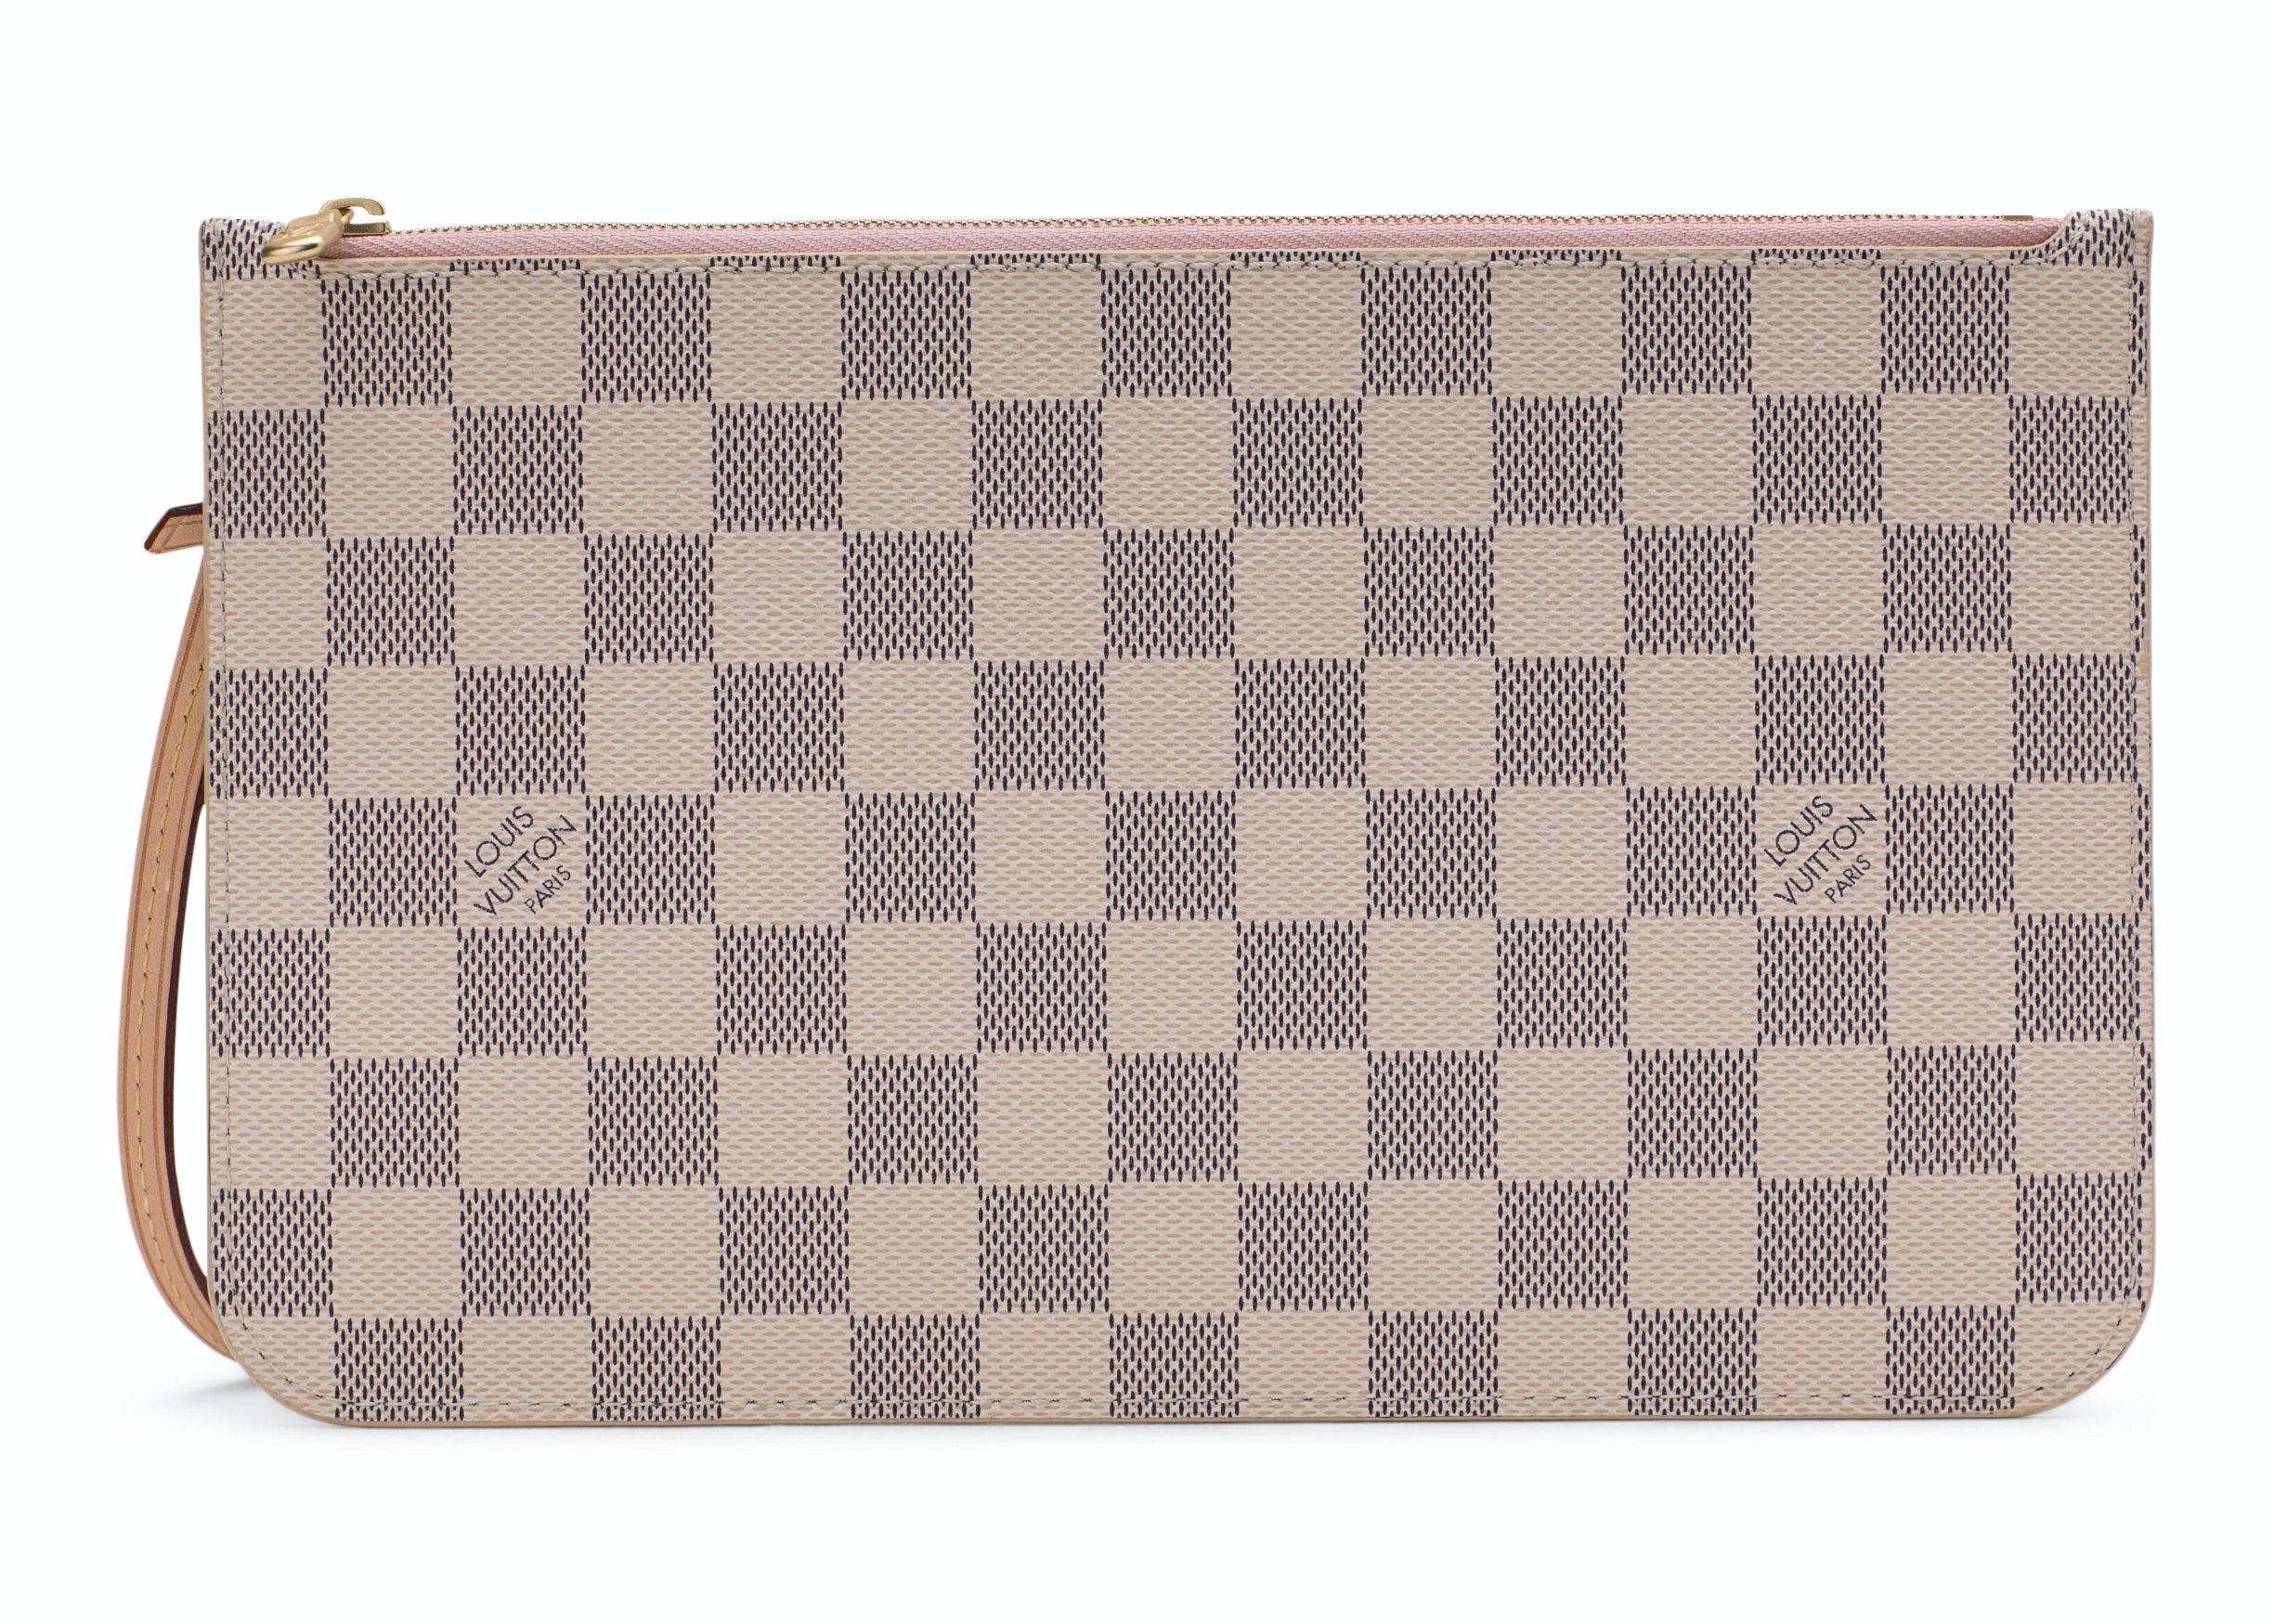 Louis Vuitton Neverfull Pochette Louis Vuitton Neverfull Pochette Damier Azur Ivory